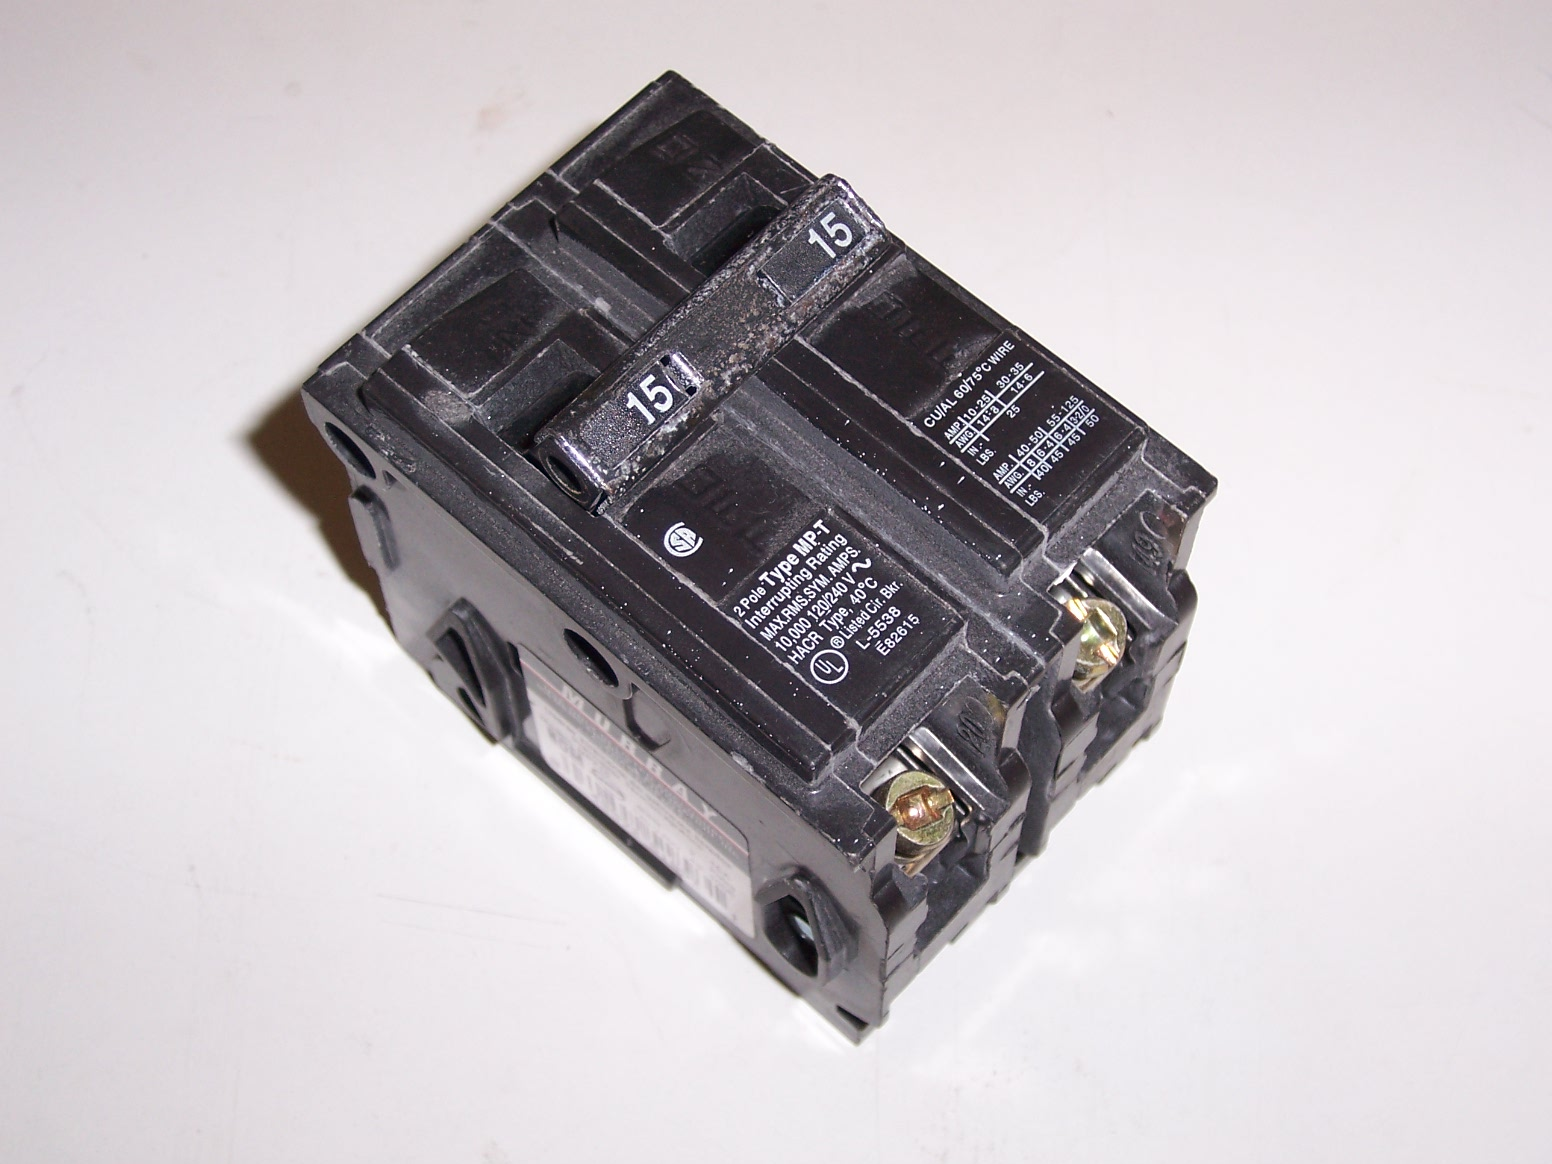 MURRAY MP2110 110Amp, 2 Pole, 120/240 Volt, Plug-In Circuit Breaker